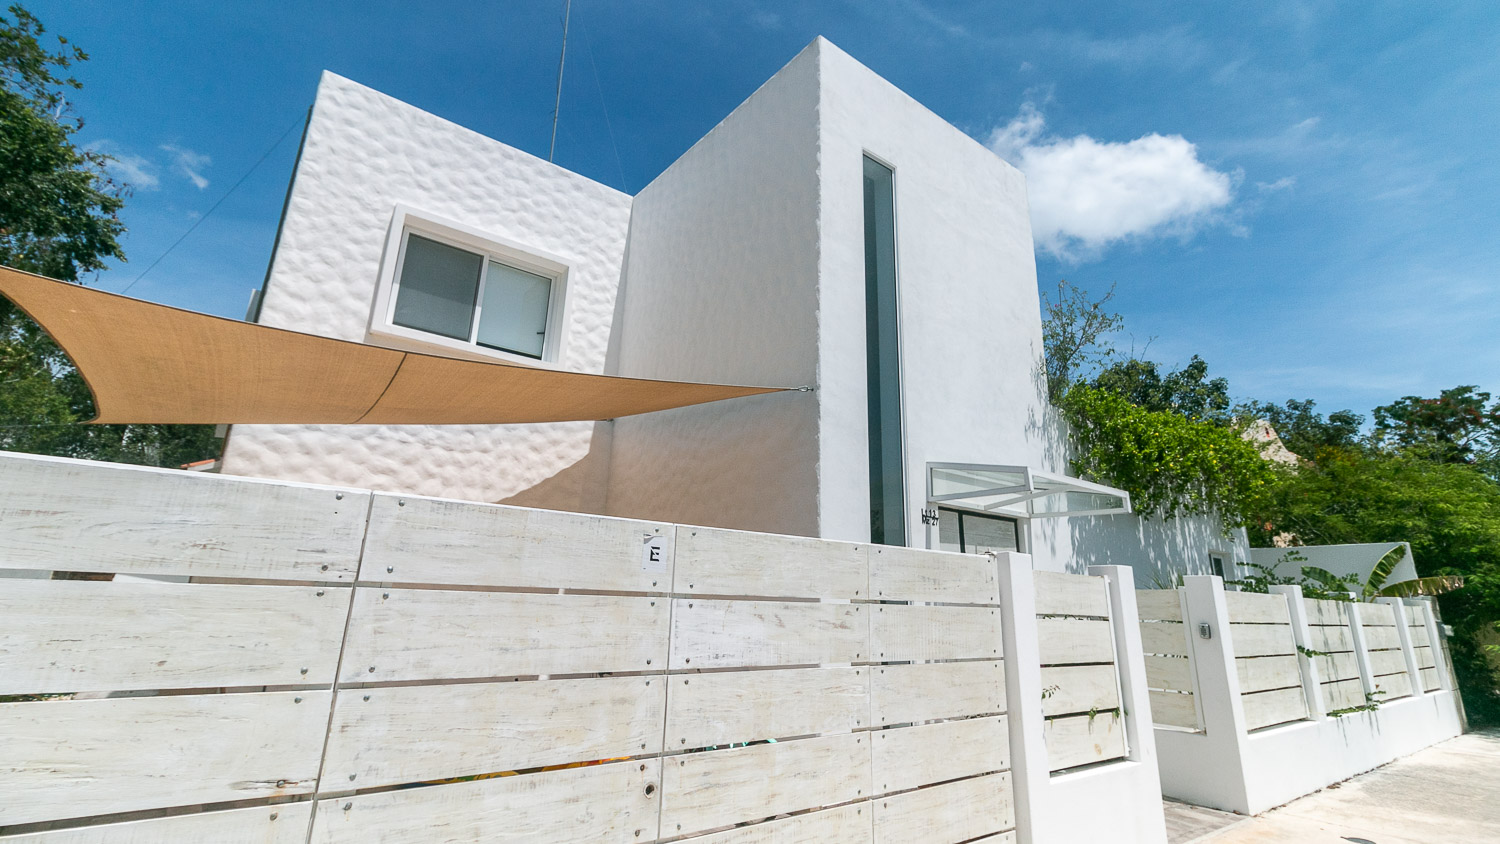 4-bedroom-house-in-a-gated-community-in-Tulum-Facade